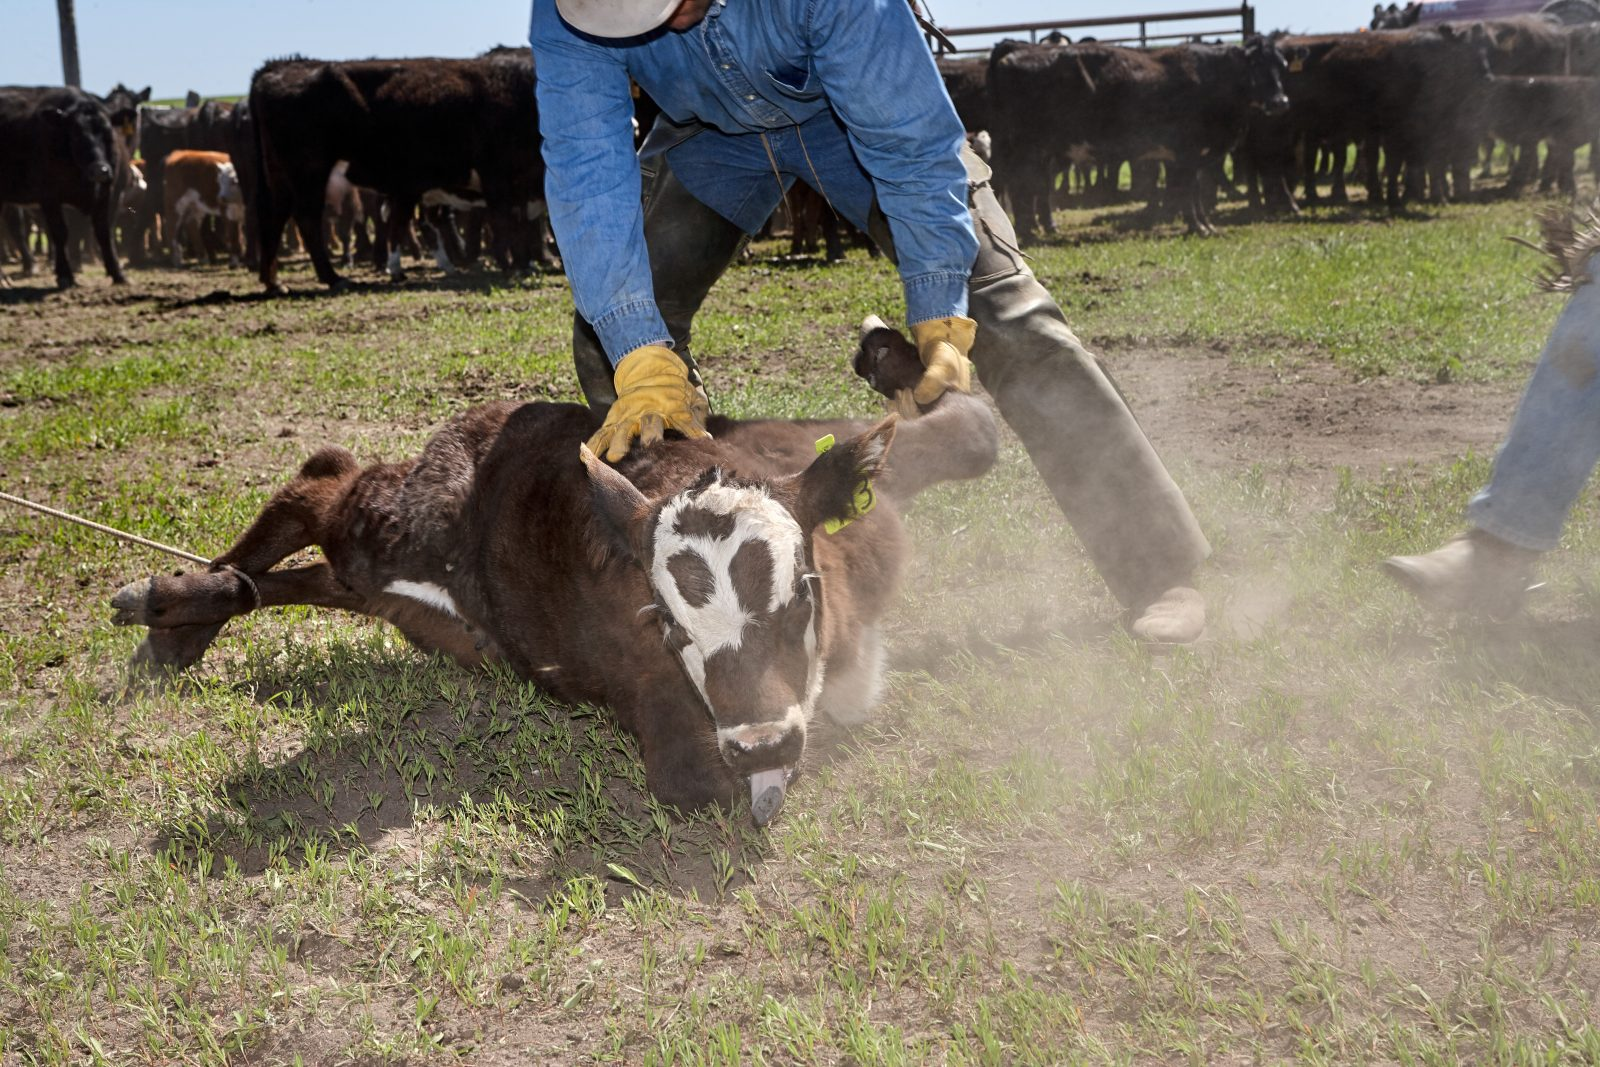 Cowboy roping a young calf for branding and castration.